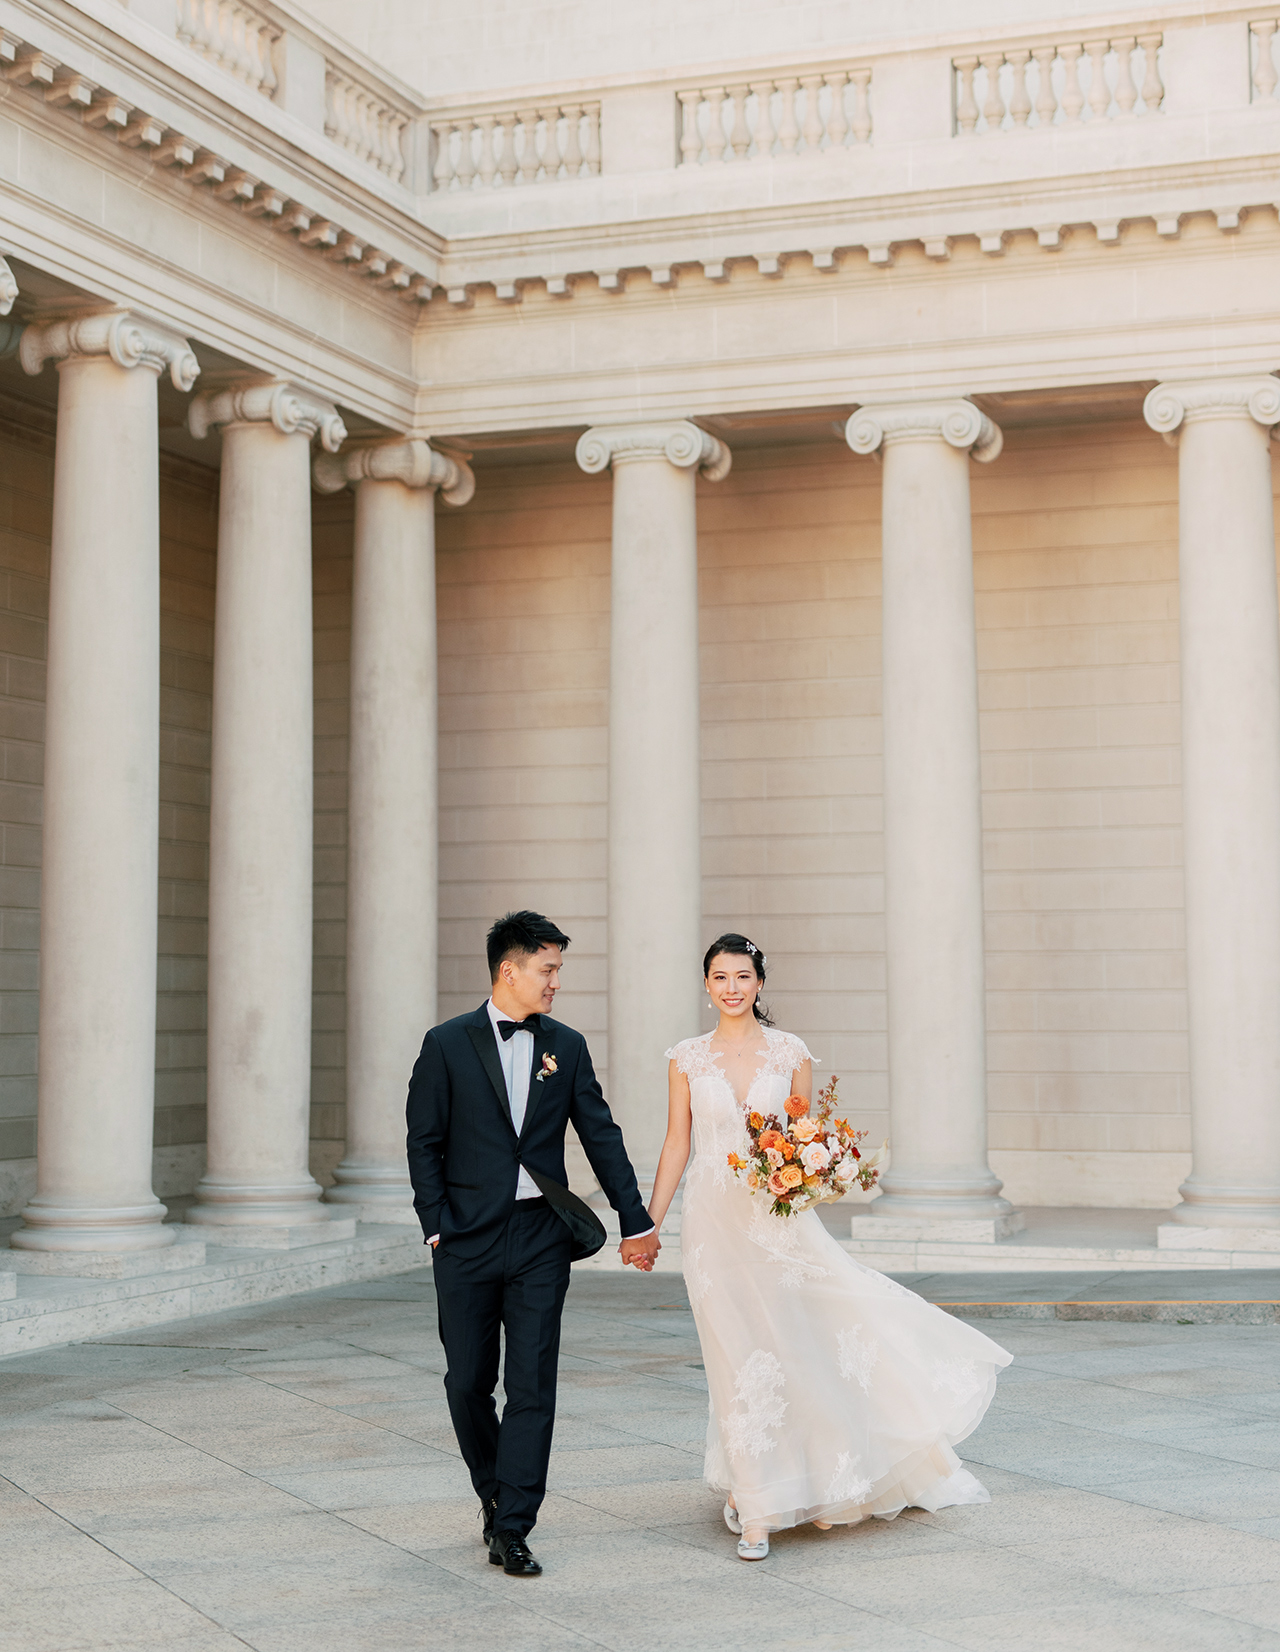 This Couple Celebrated Their California Wedding Surrounded by Some of the World's Most Famous Sculptures